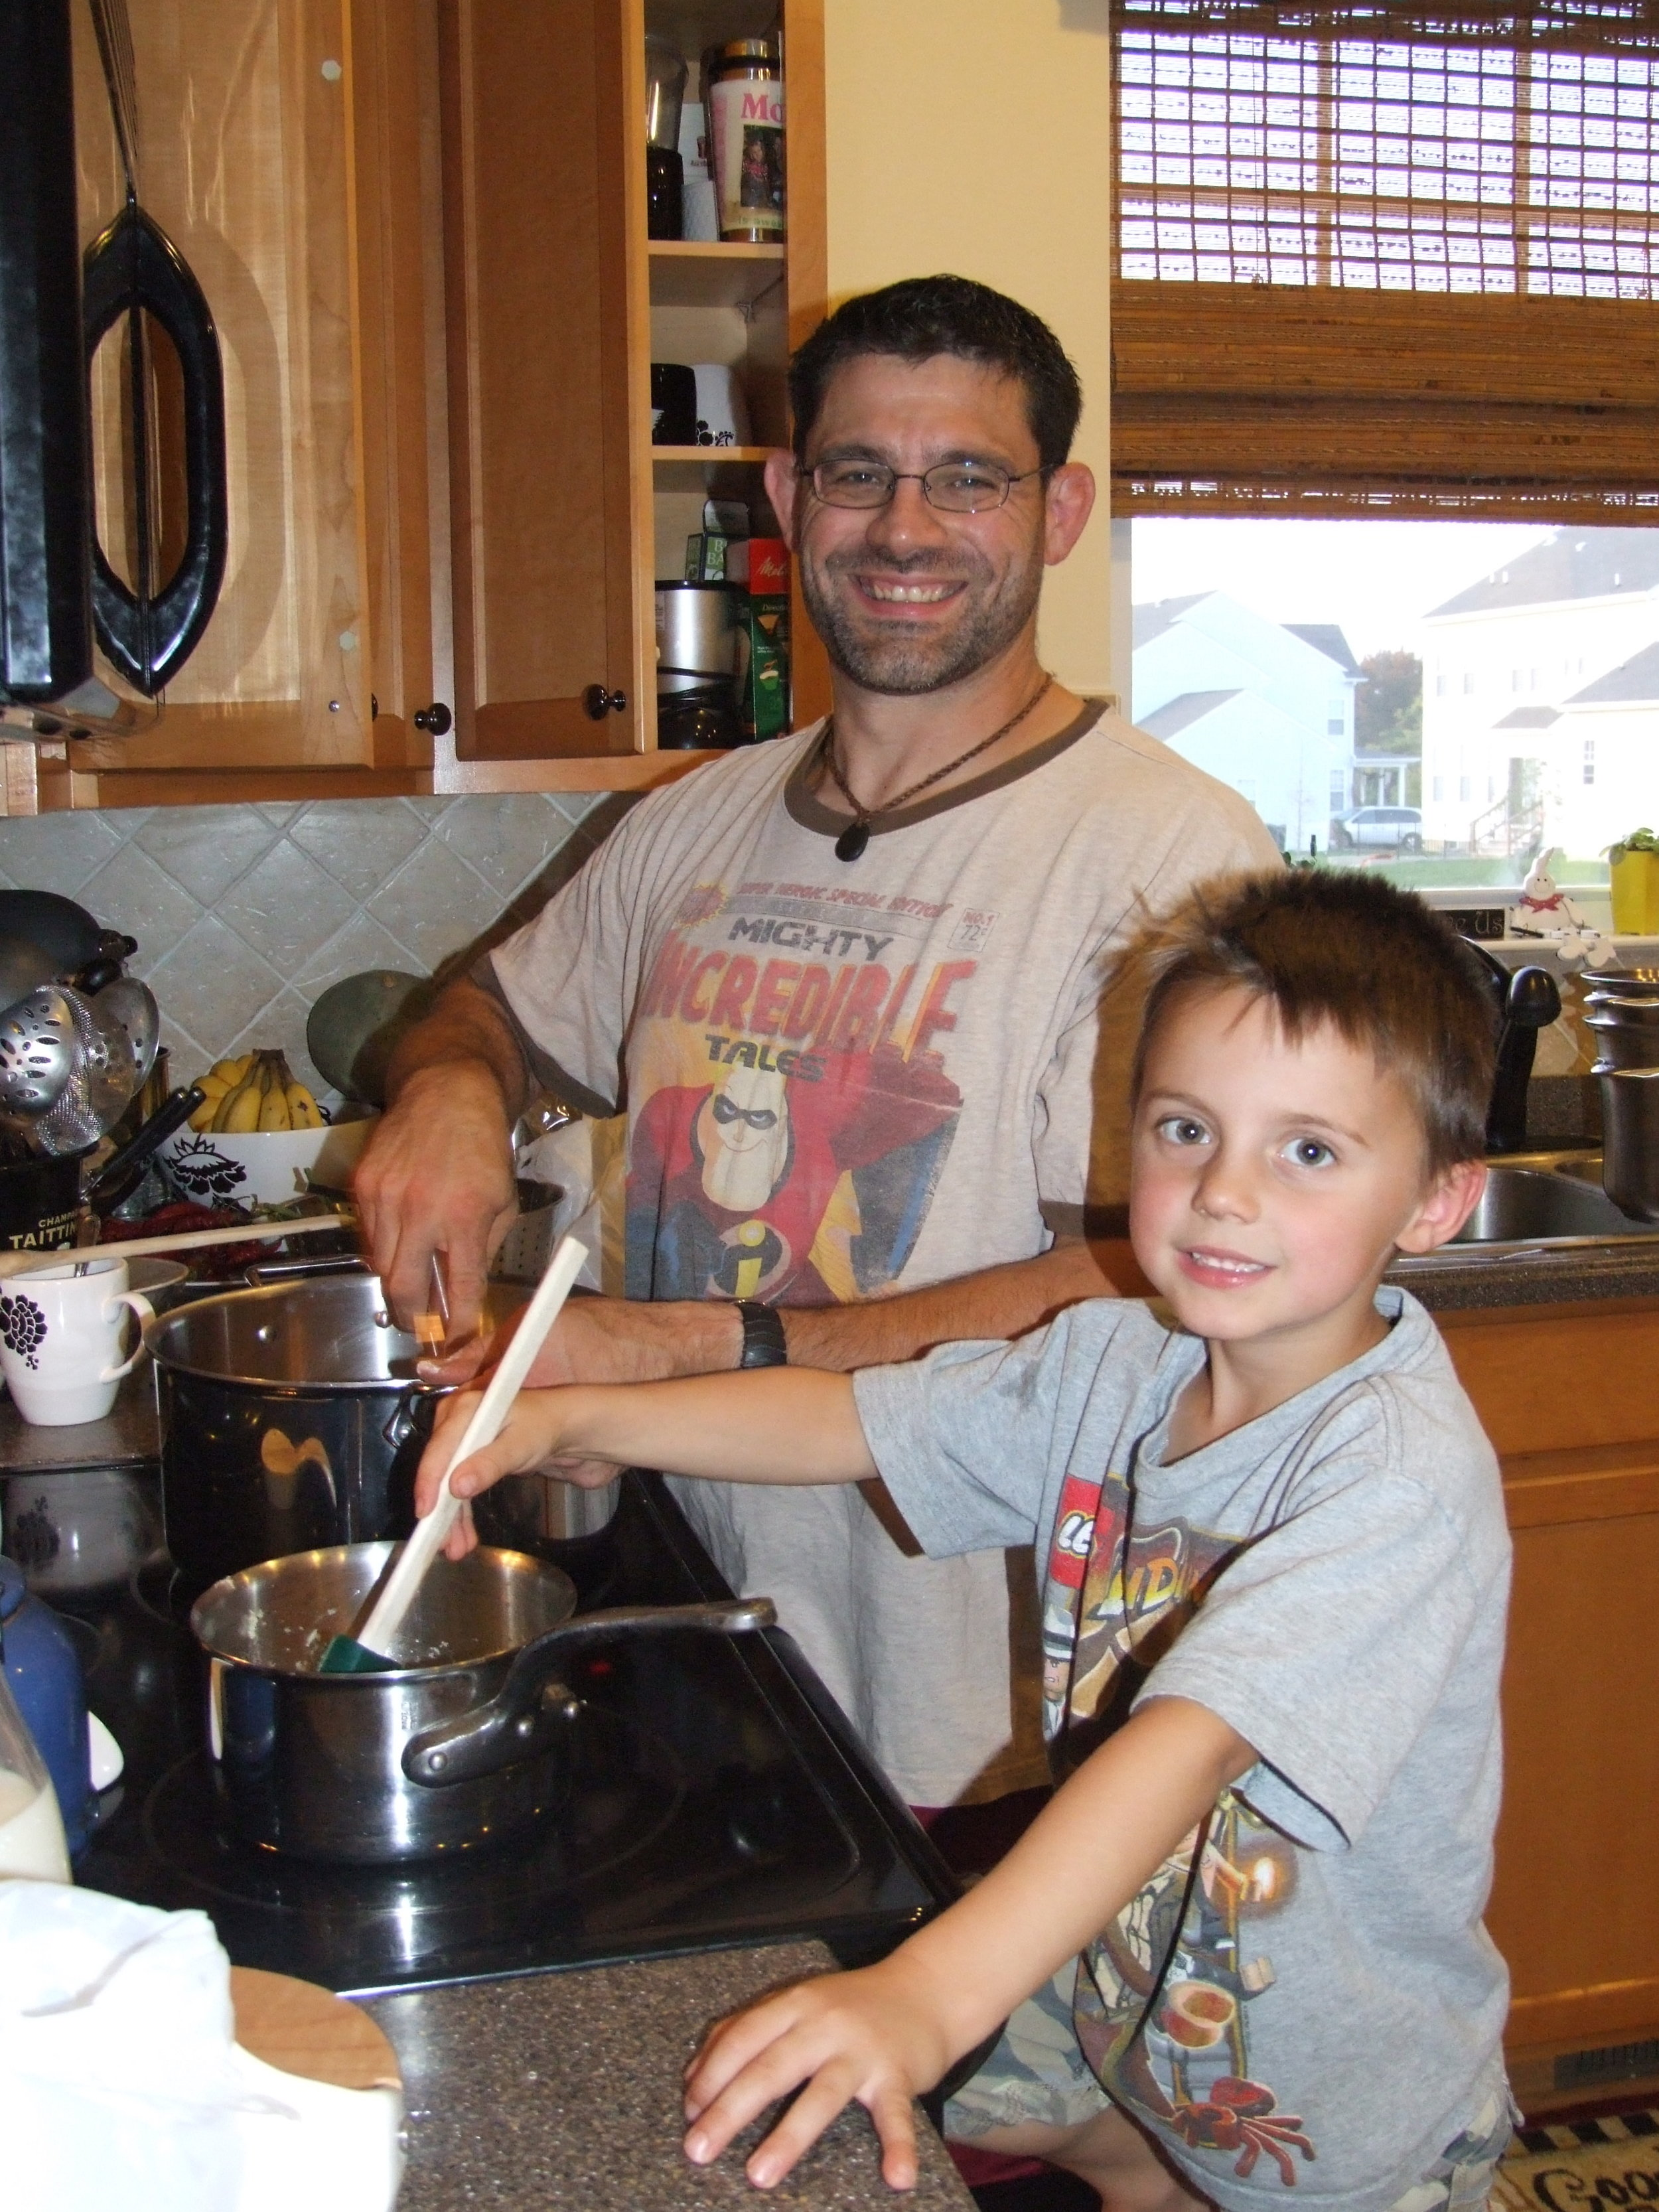 Cooking at a young age